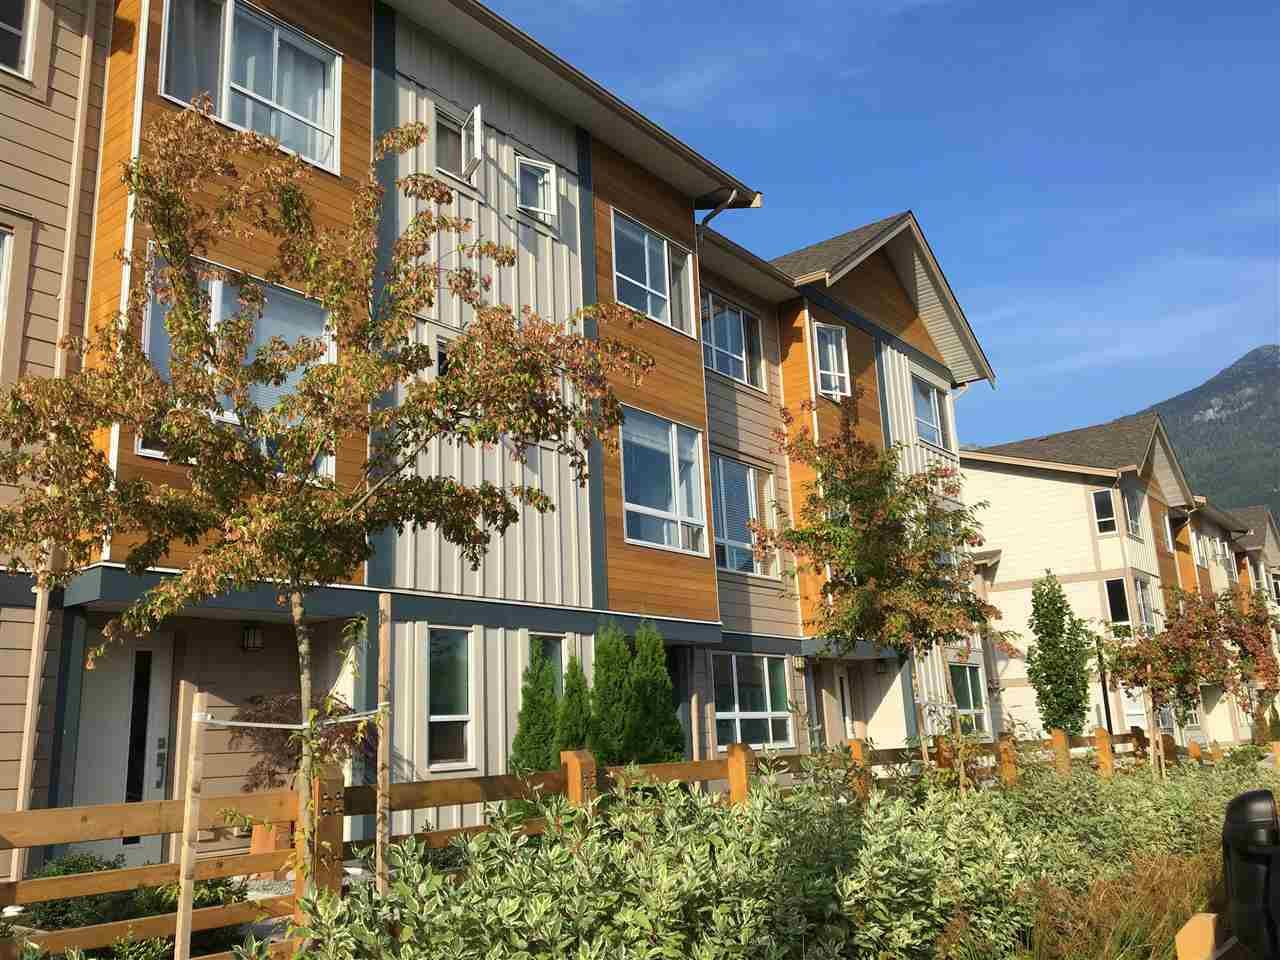 """Main Photo: 3 1188 WILSON Crescent in Squamish: Downtown SQ Townhouse for sale in """"Current"""" : MLS®# R2201514"""